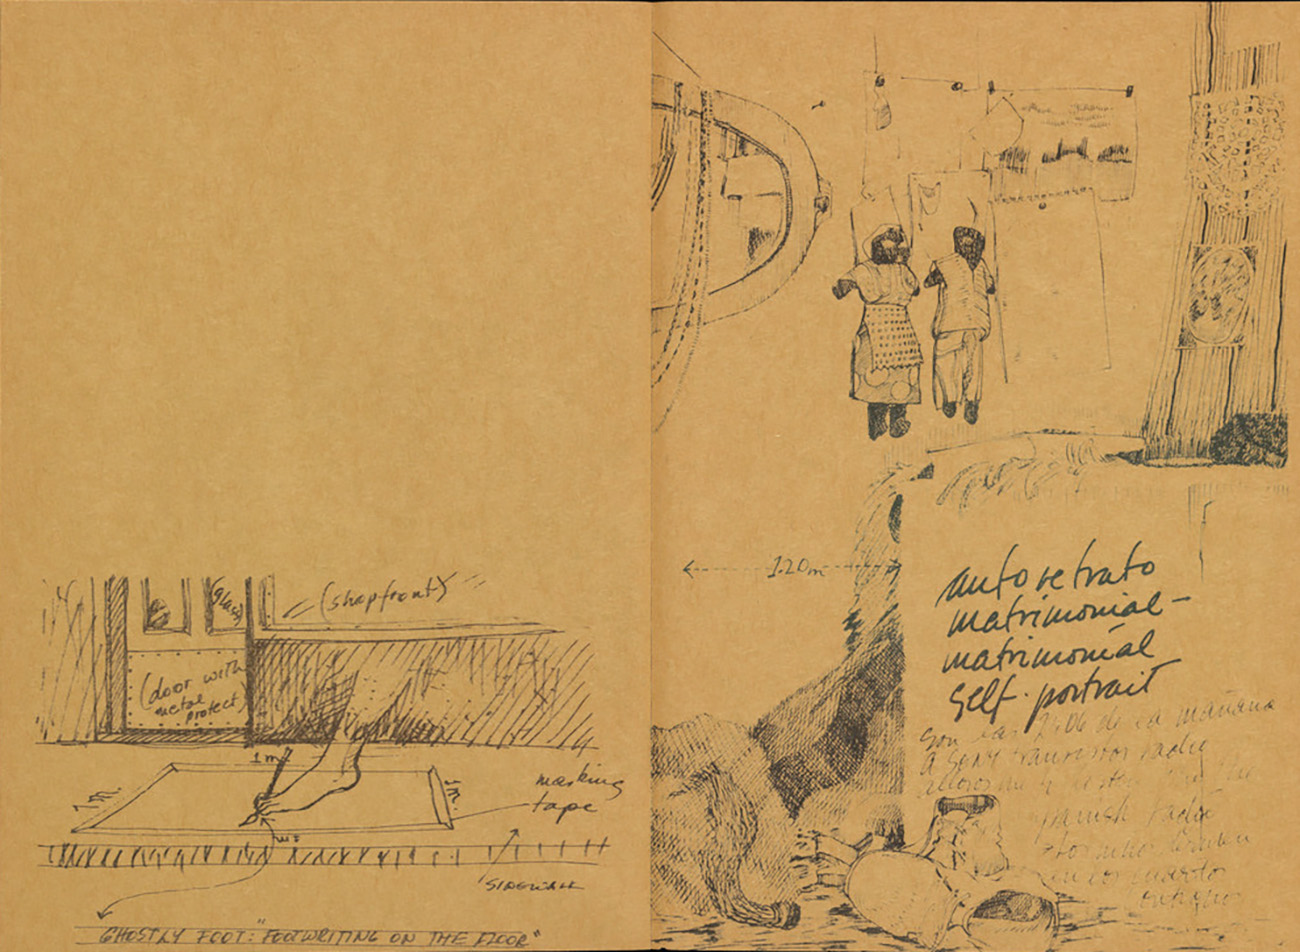 Open sketchbook with aged pages. On the left is a drawing with notes of a foot on a sidewalk. On the right is a sketch of an interior scene with dolls hanging on a wall and one lying down and several translations for the word self portrait.